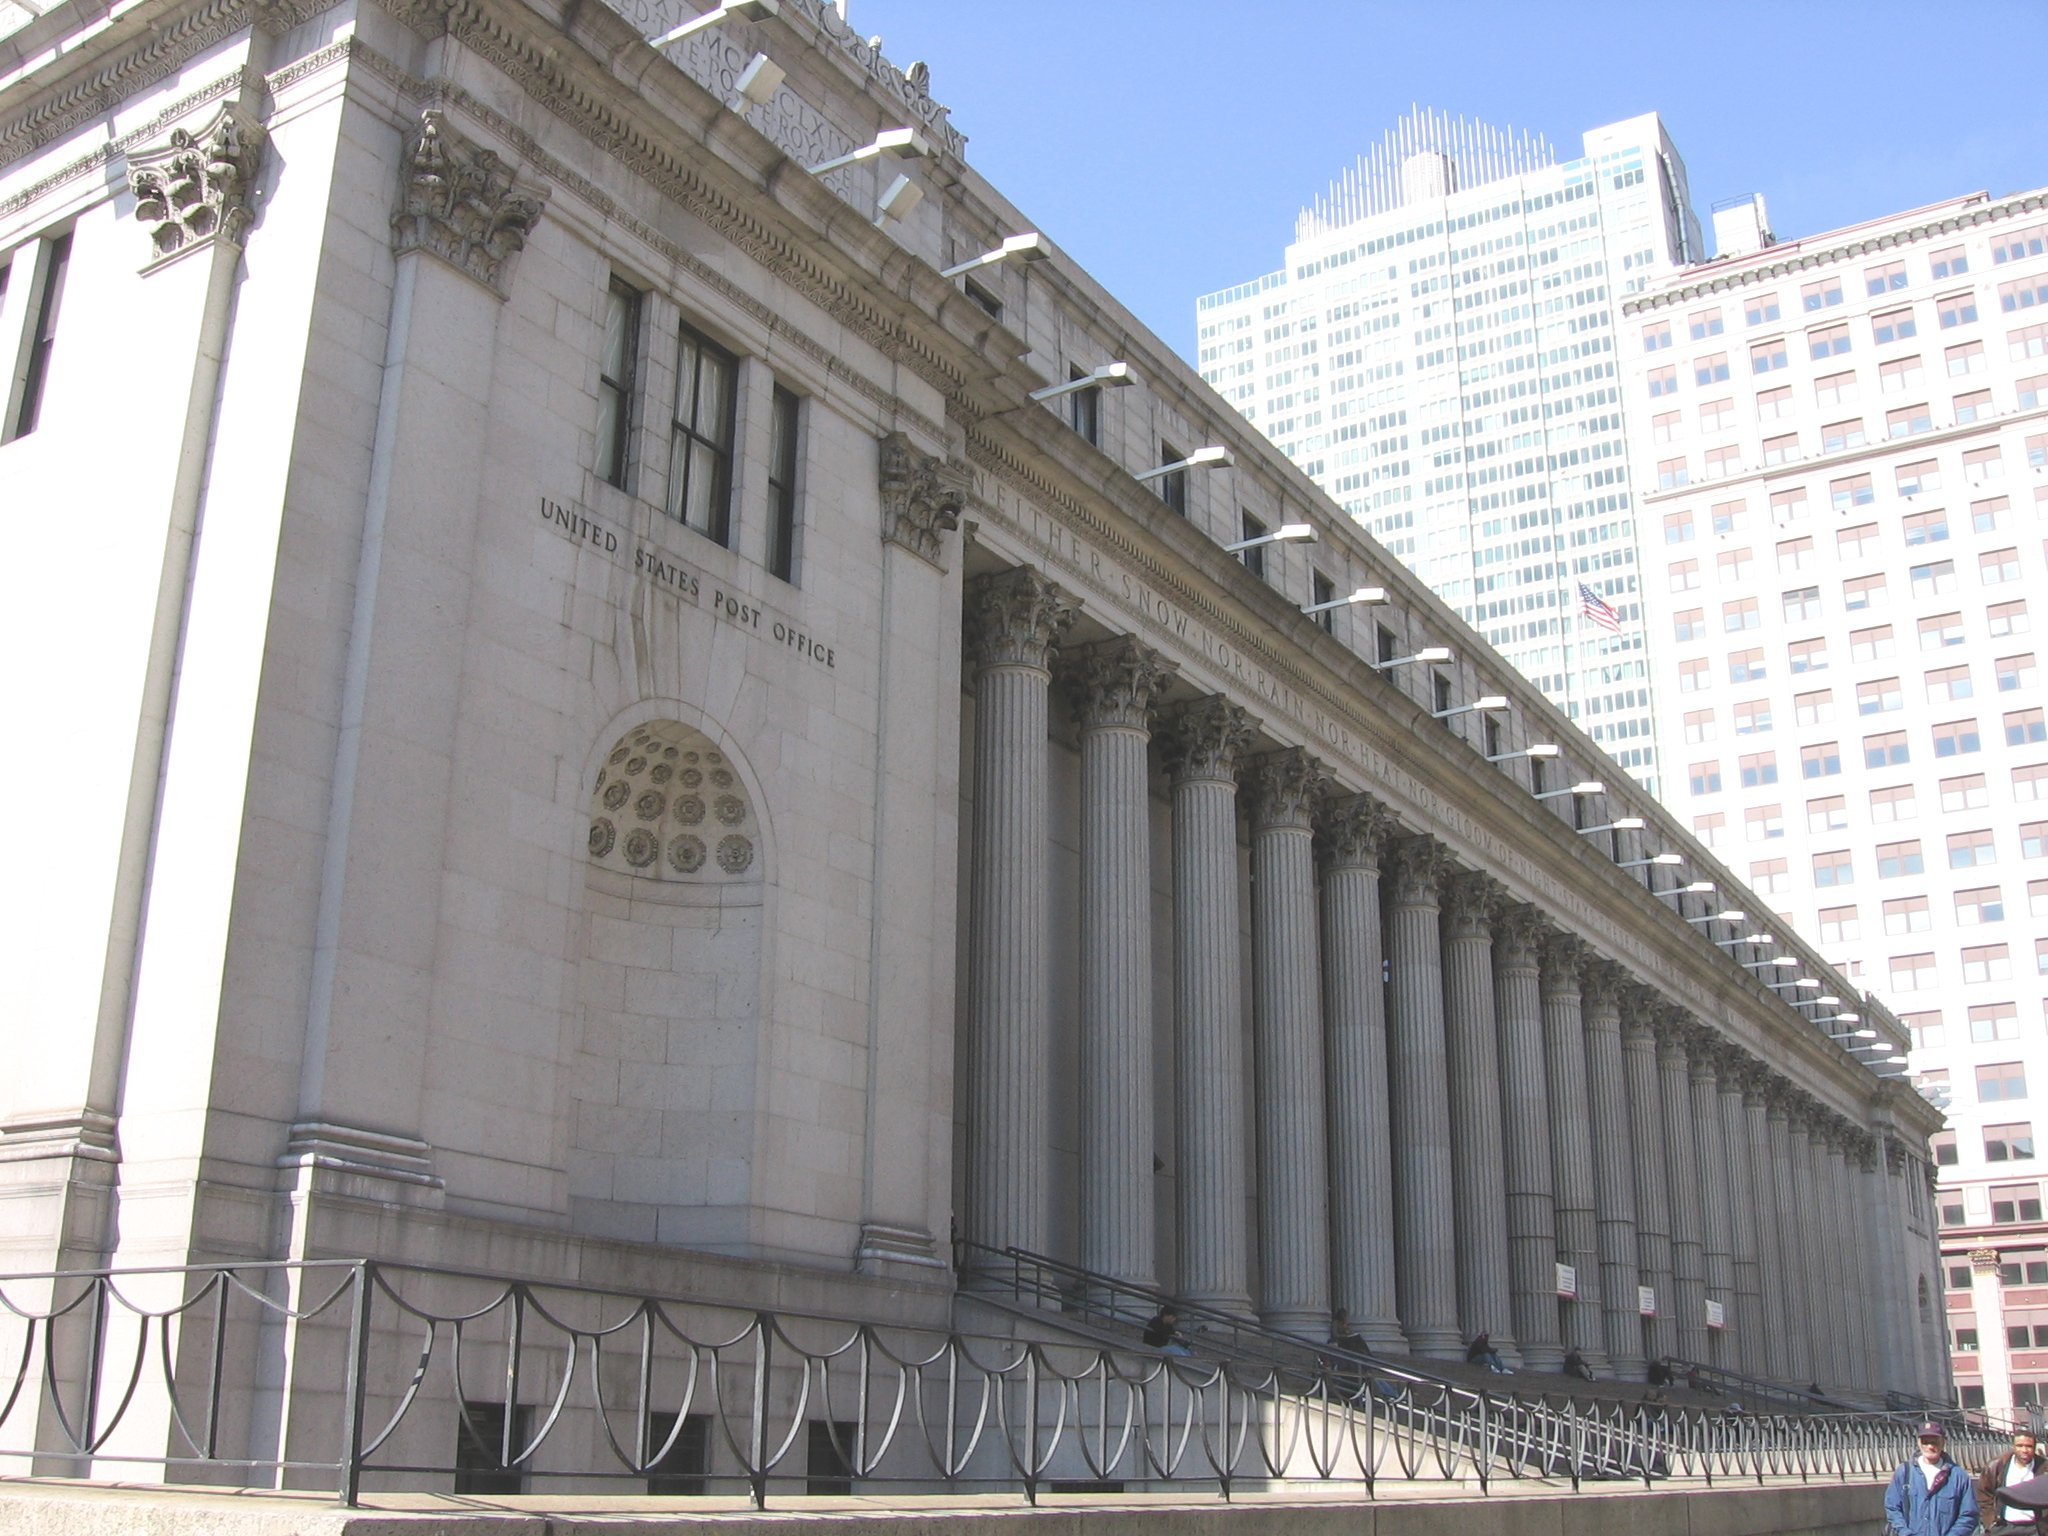 Lovely NYC Main Post Office